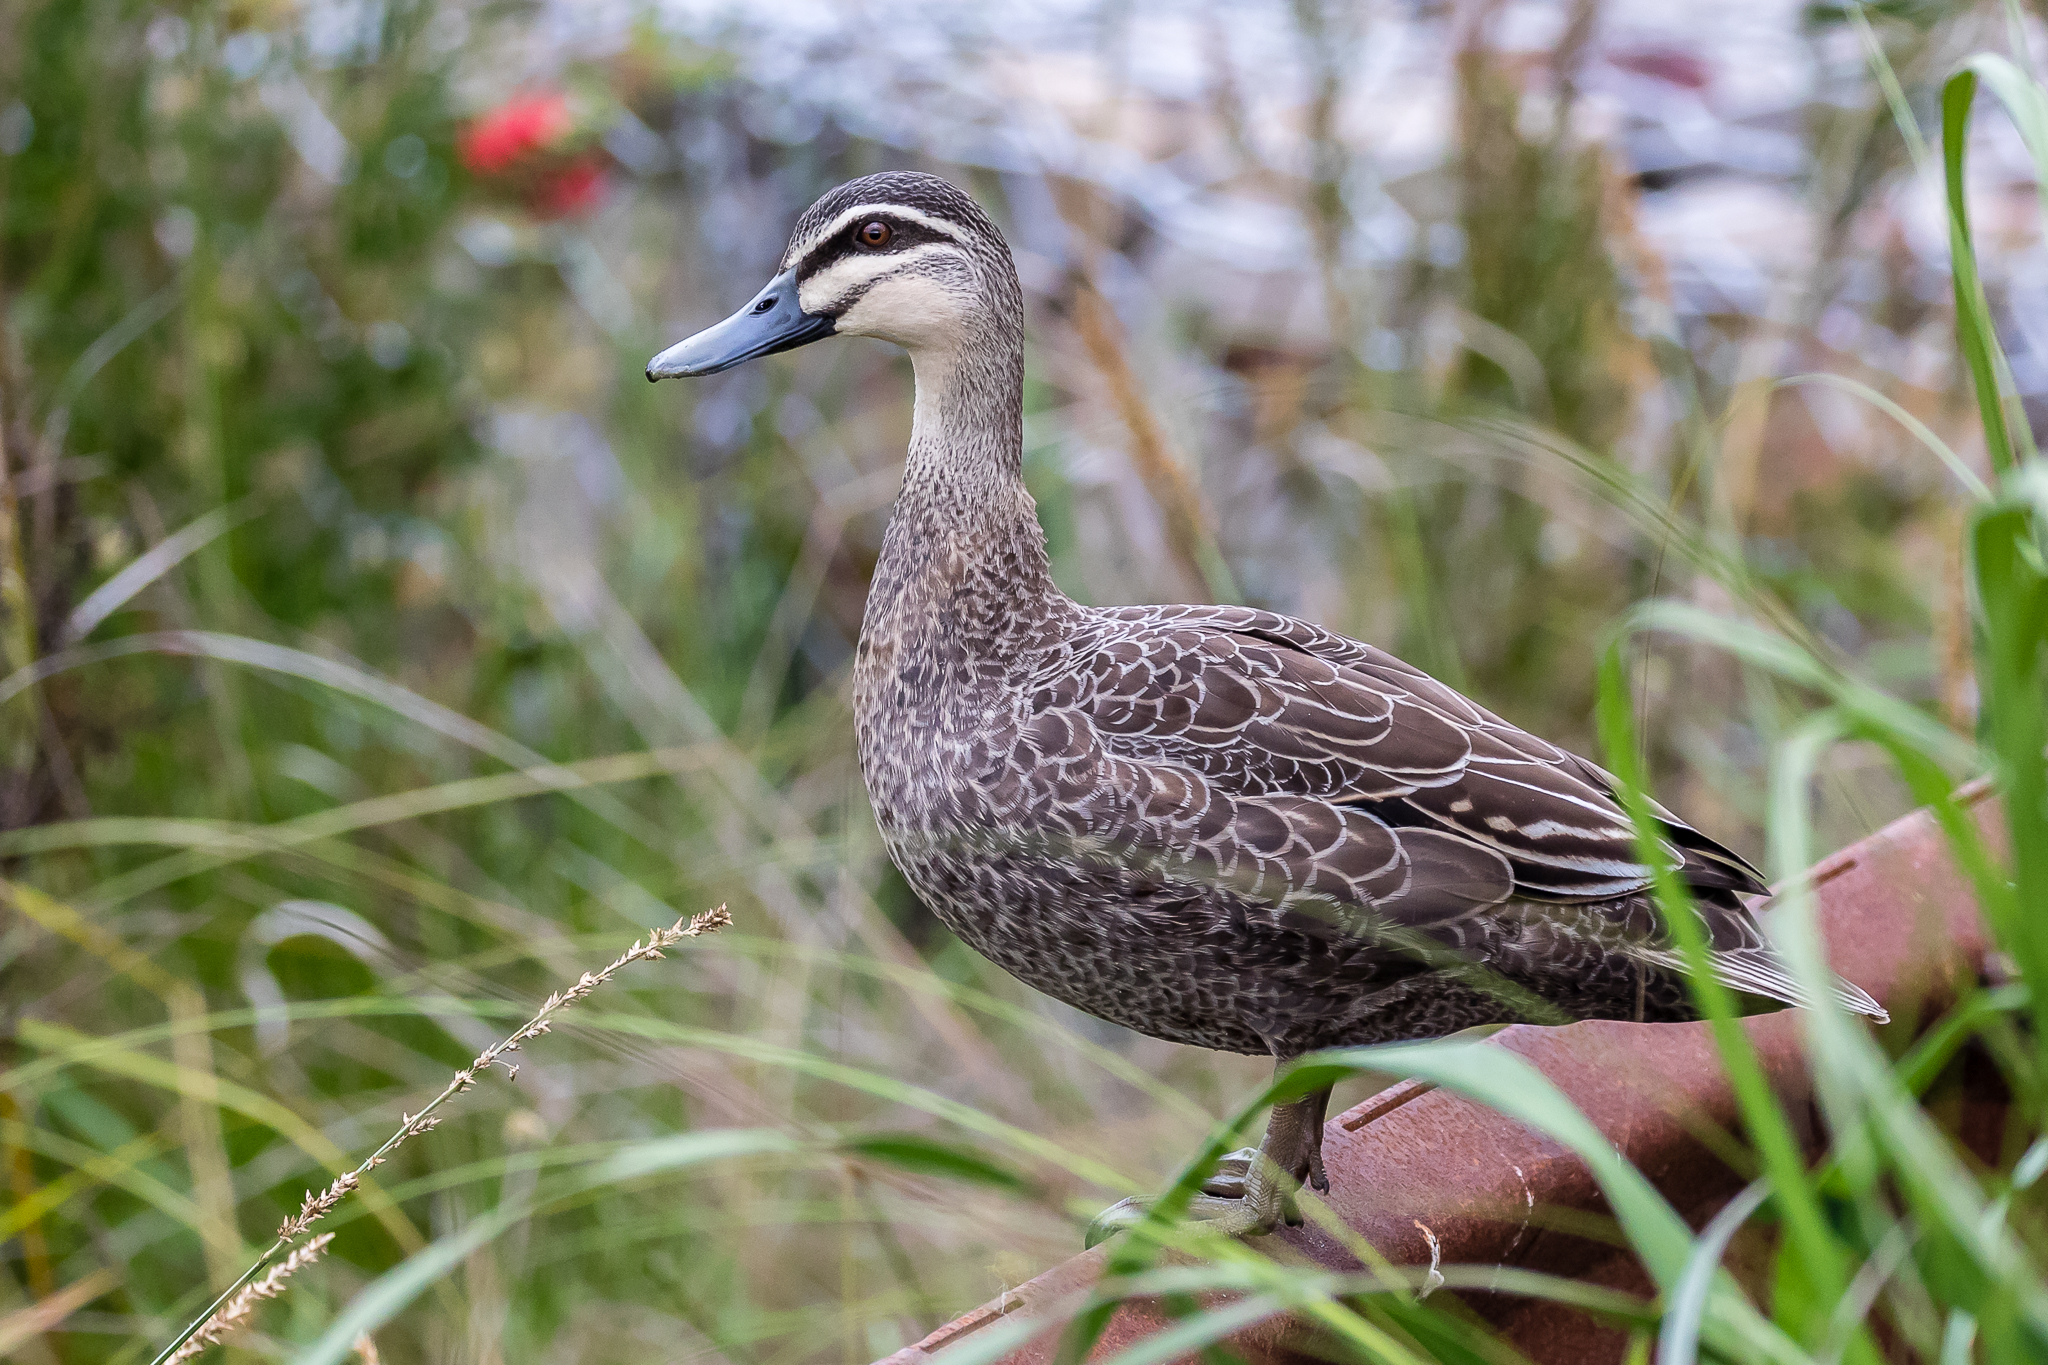 Pacific Black Ducks have adapted well to city life making the most of parks, ponds and picnic left overs.